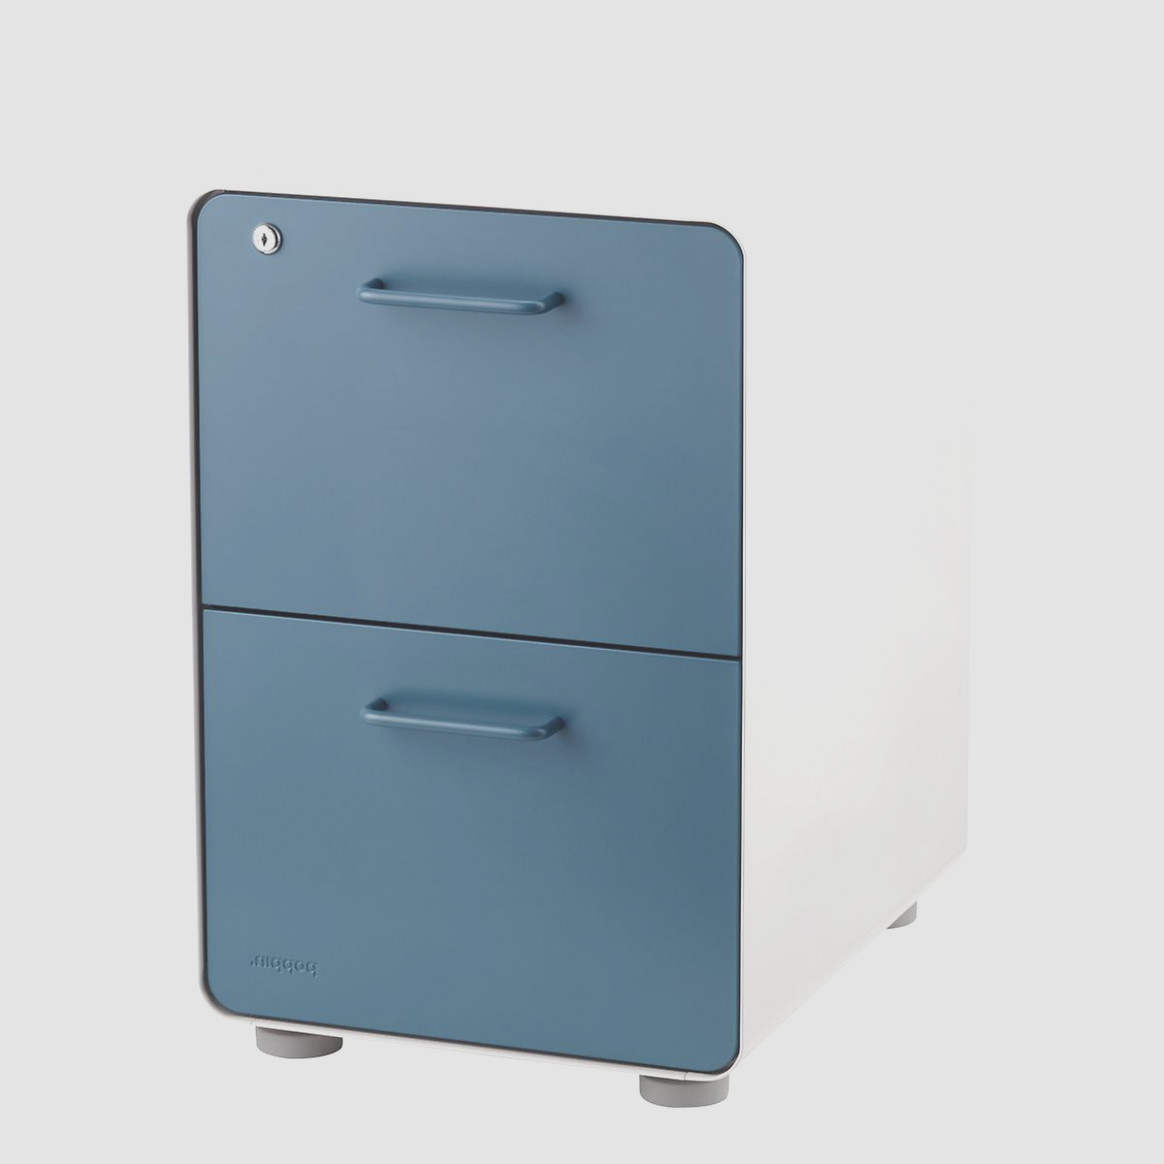 Filing Cabinet With 1 Drawers